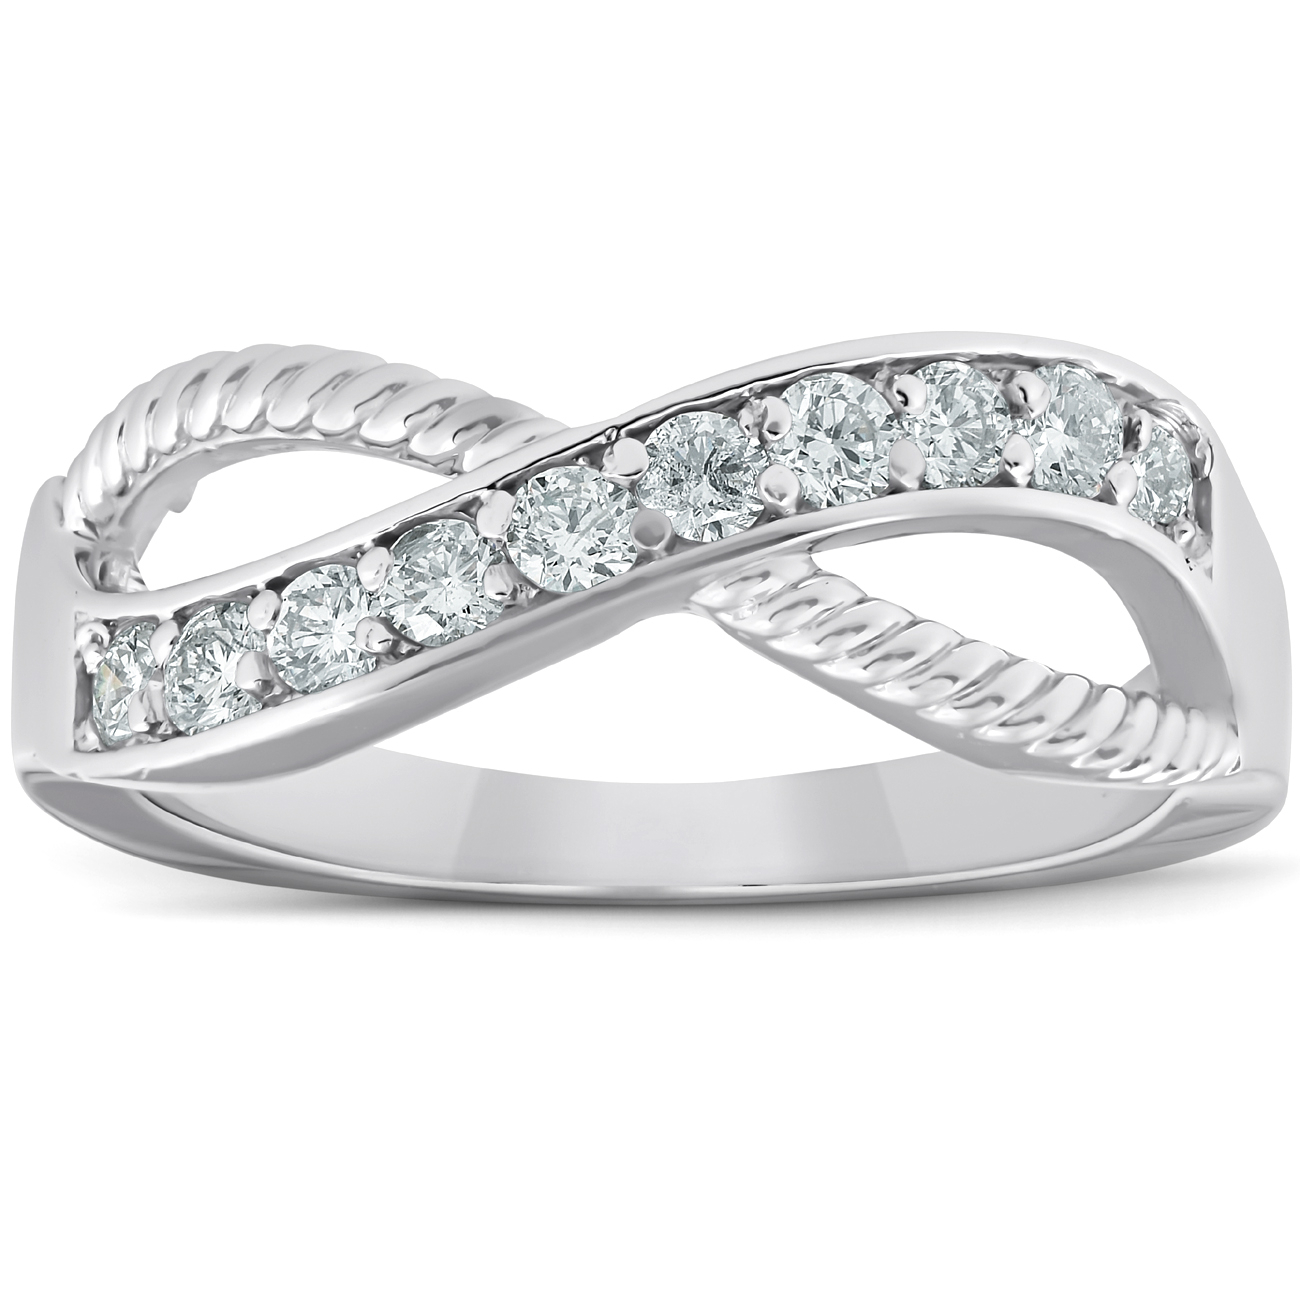 Details About 1/2 Ct Diamond Infinity Braided Anniversary Right Hand Ring 10k Whie Gold Within Current Diamond Braid Anniversary Bands In White Gold (View 14 of 25)